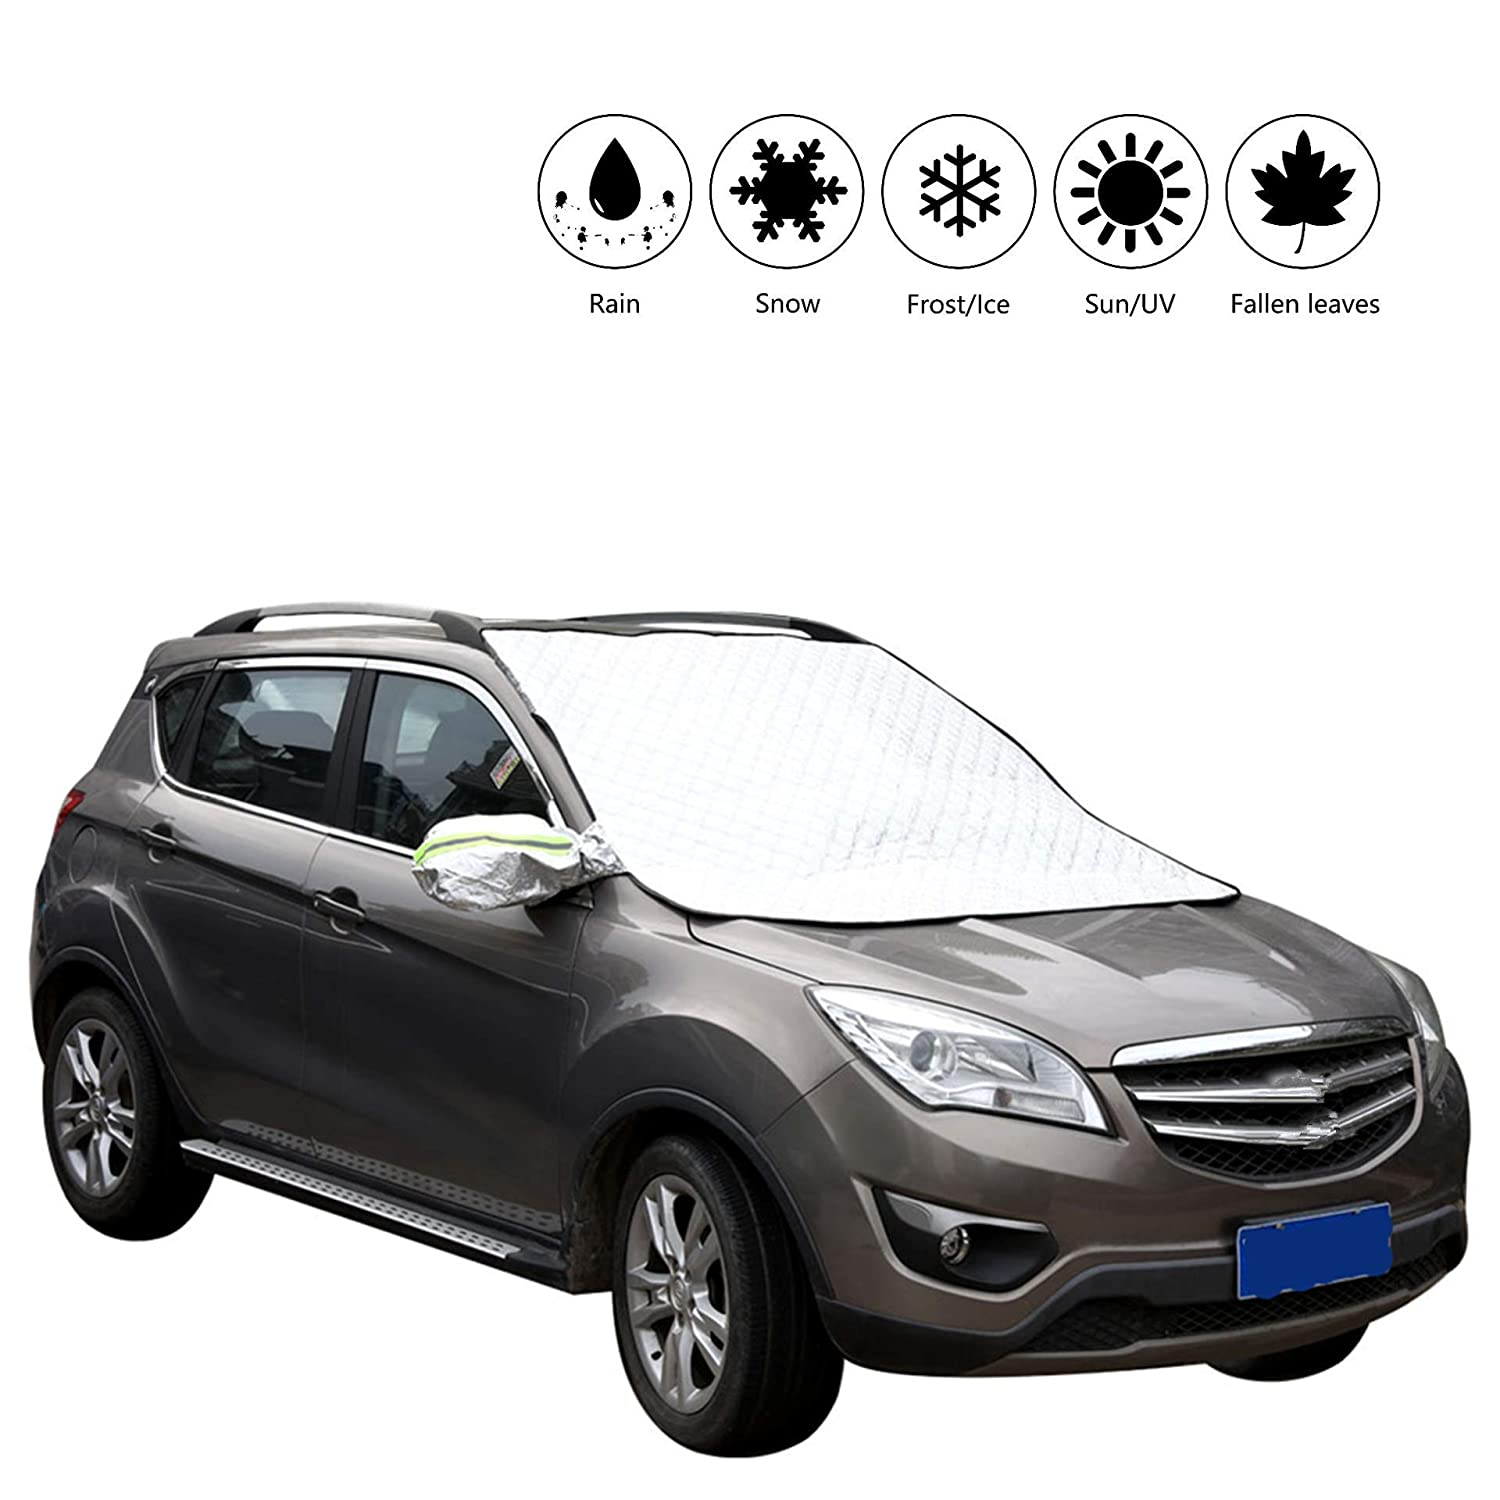 Large Size Fits Most Cars and SUV 70 Ice Frost,UV Full Protection H X 55 W GWUSKDT Car Windshield Snow Cover,Thickened 5-Layer Protection with Side Mirror Covers,Windshield Cover for Snow